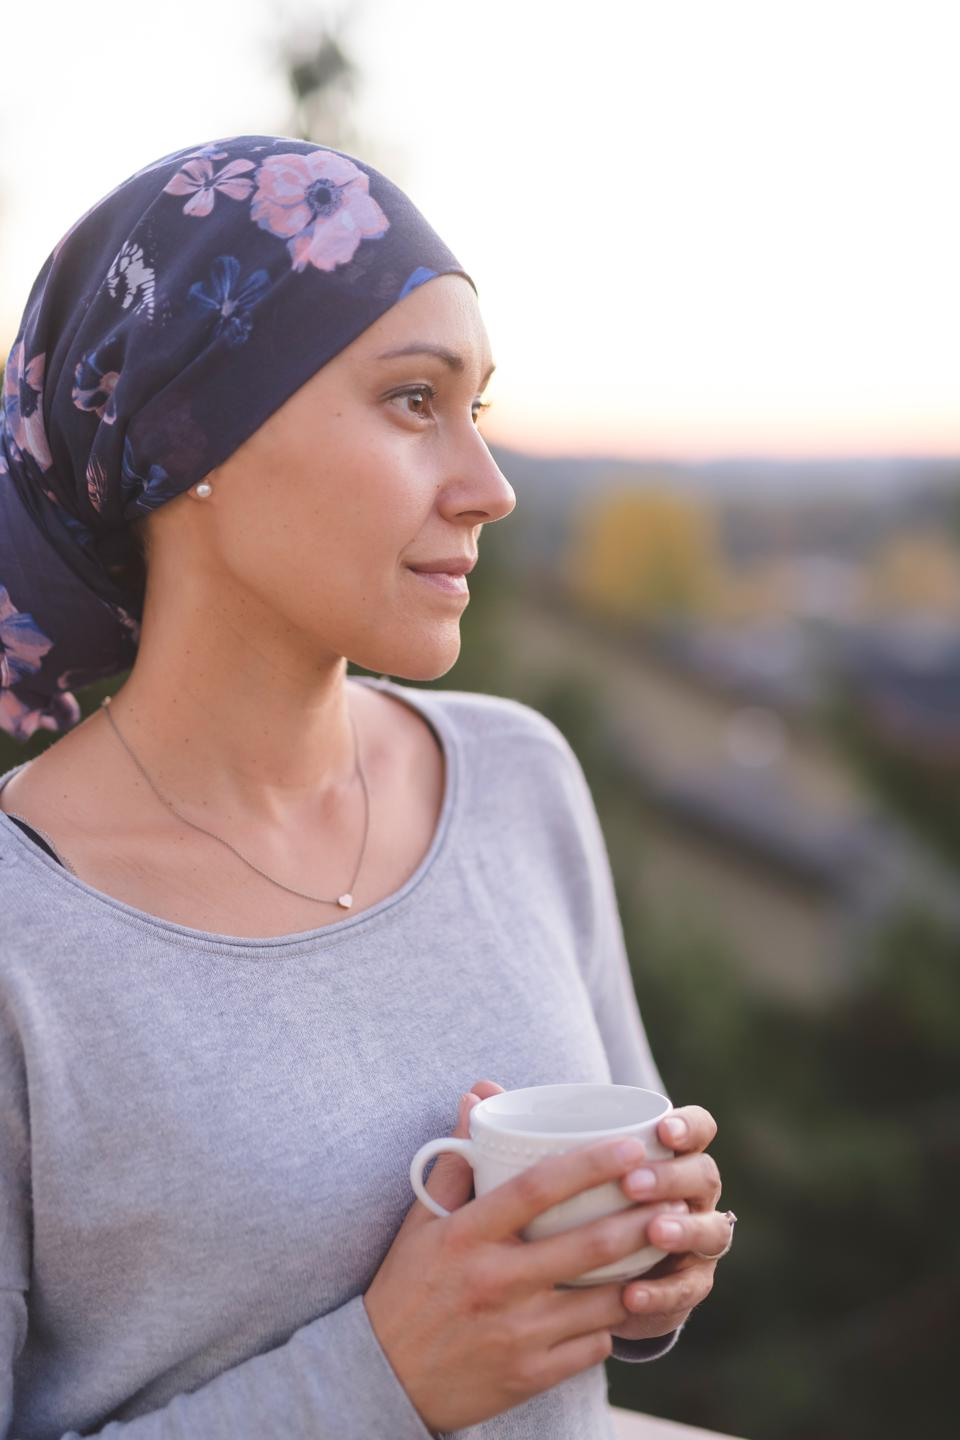 Ethnic woman battling cancer standing outside and looking off-screen with a contemplative expression